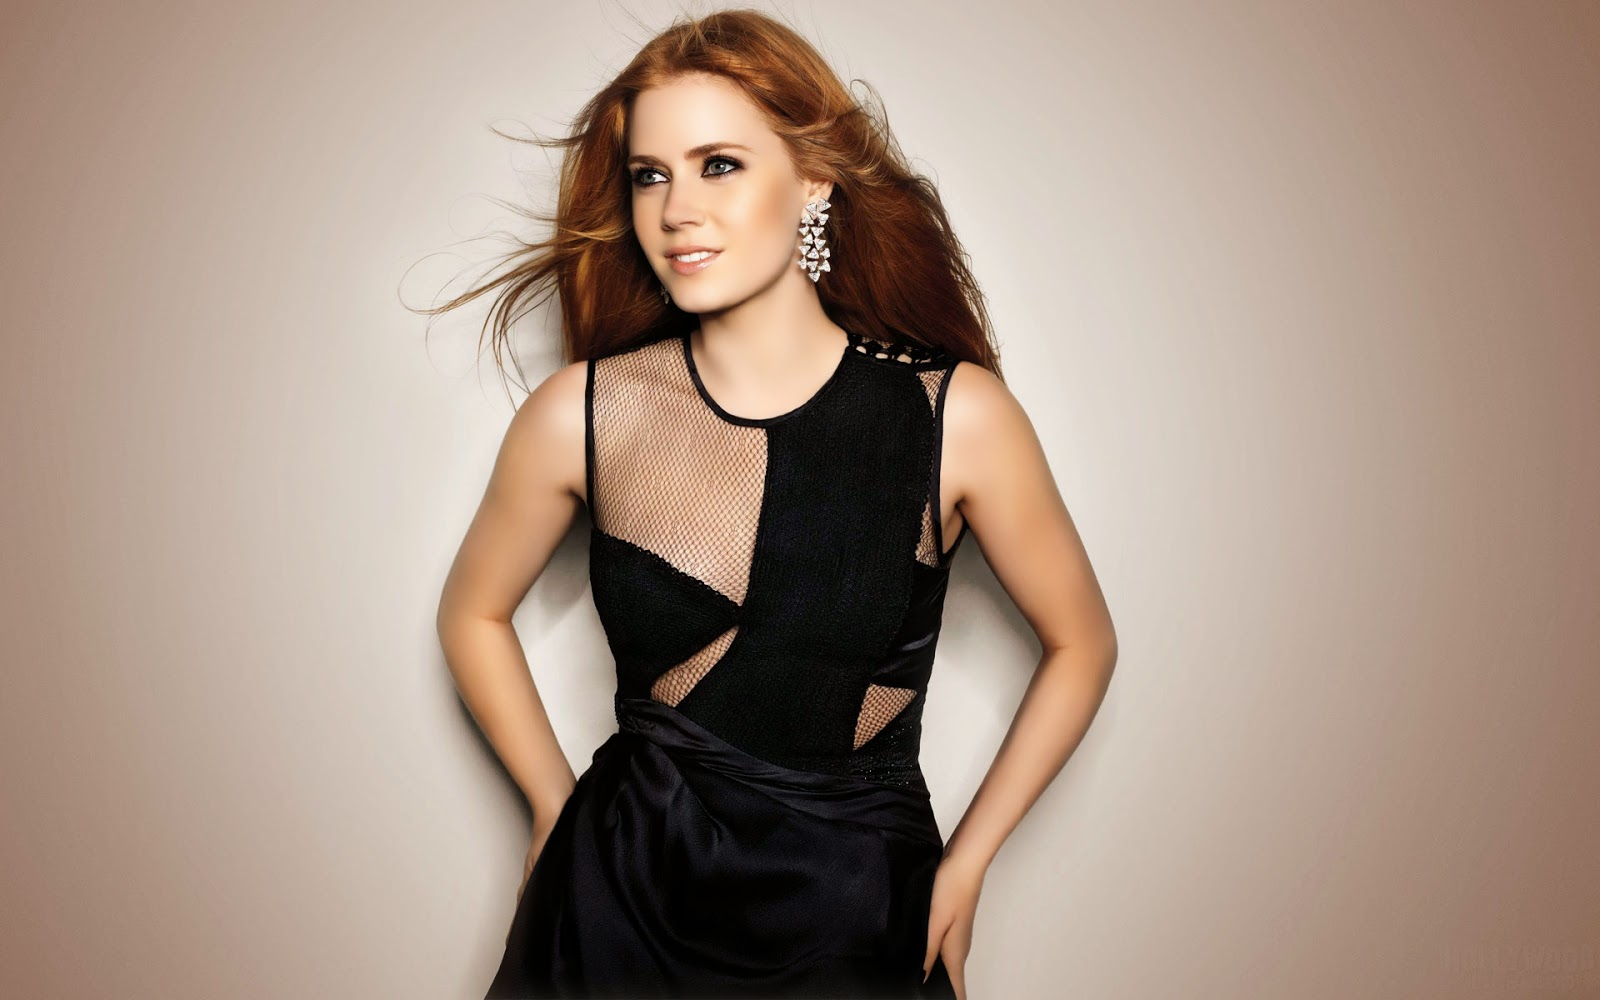 Amy adams in black color western dress wallpapers